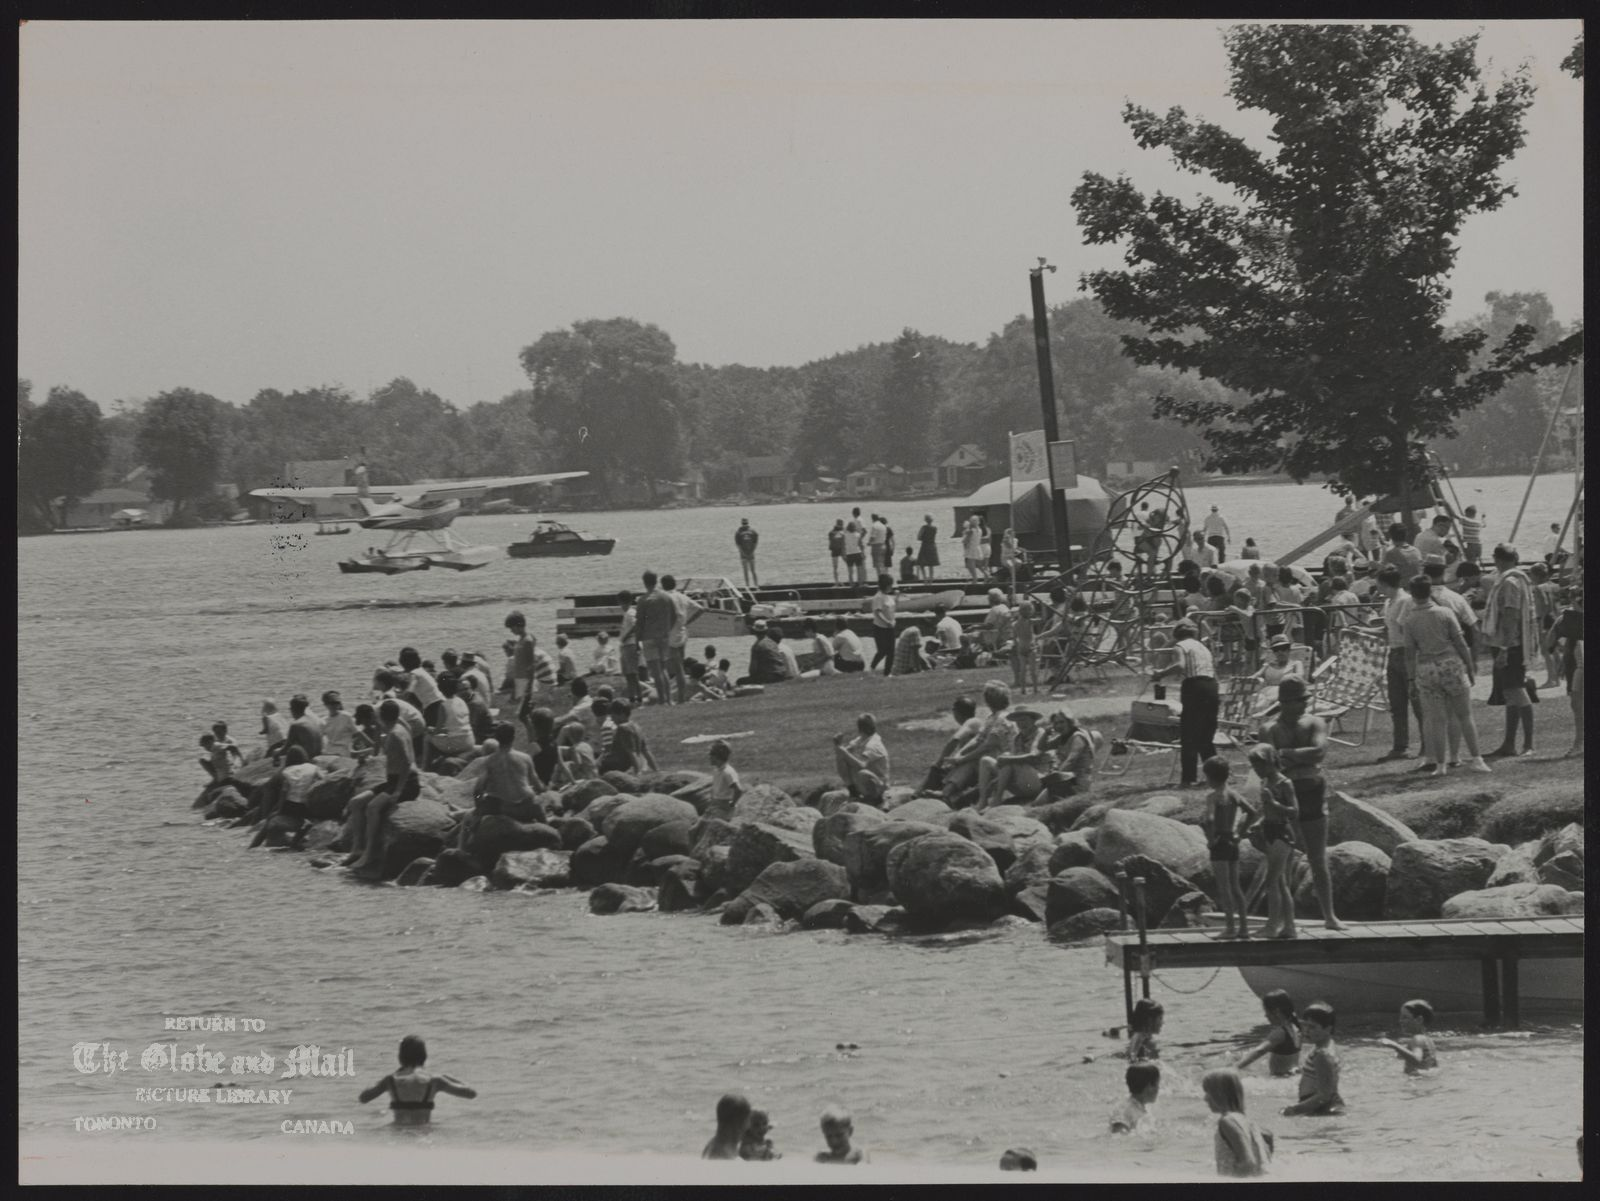 CHAMPLAIN PARK (Orillia) Holiday activities on Lake Couchiching at Champlain Park included flying, boating, swimming and sunning.